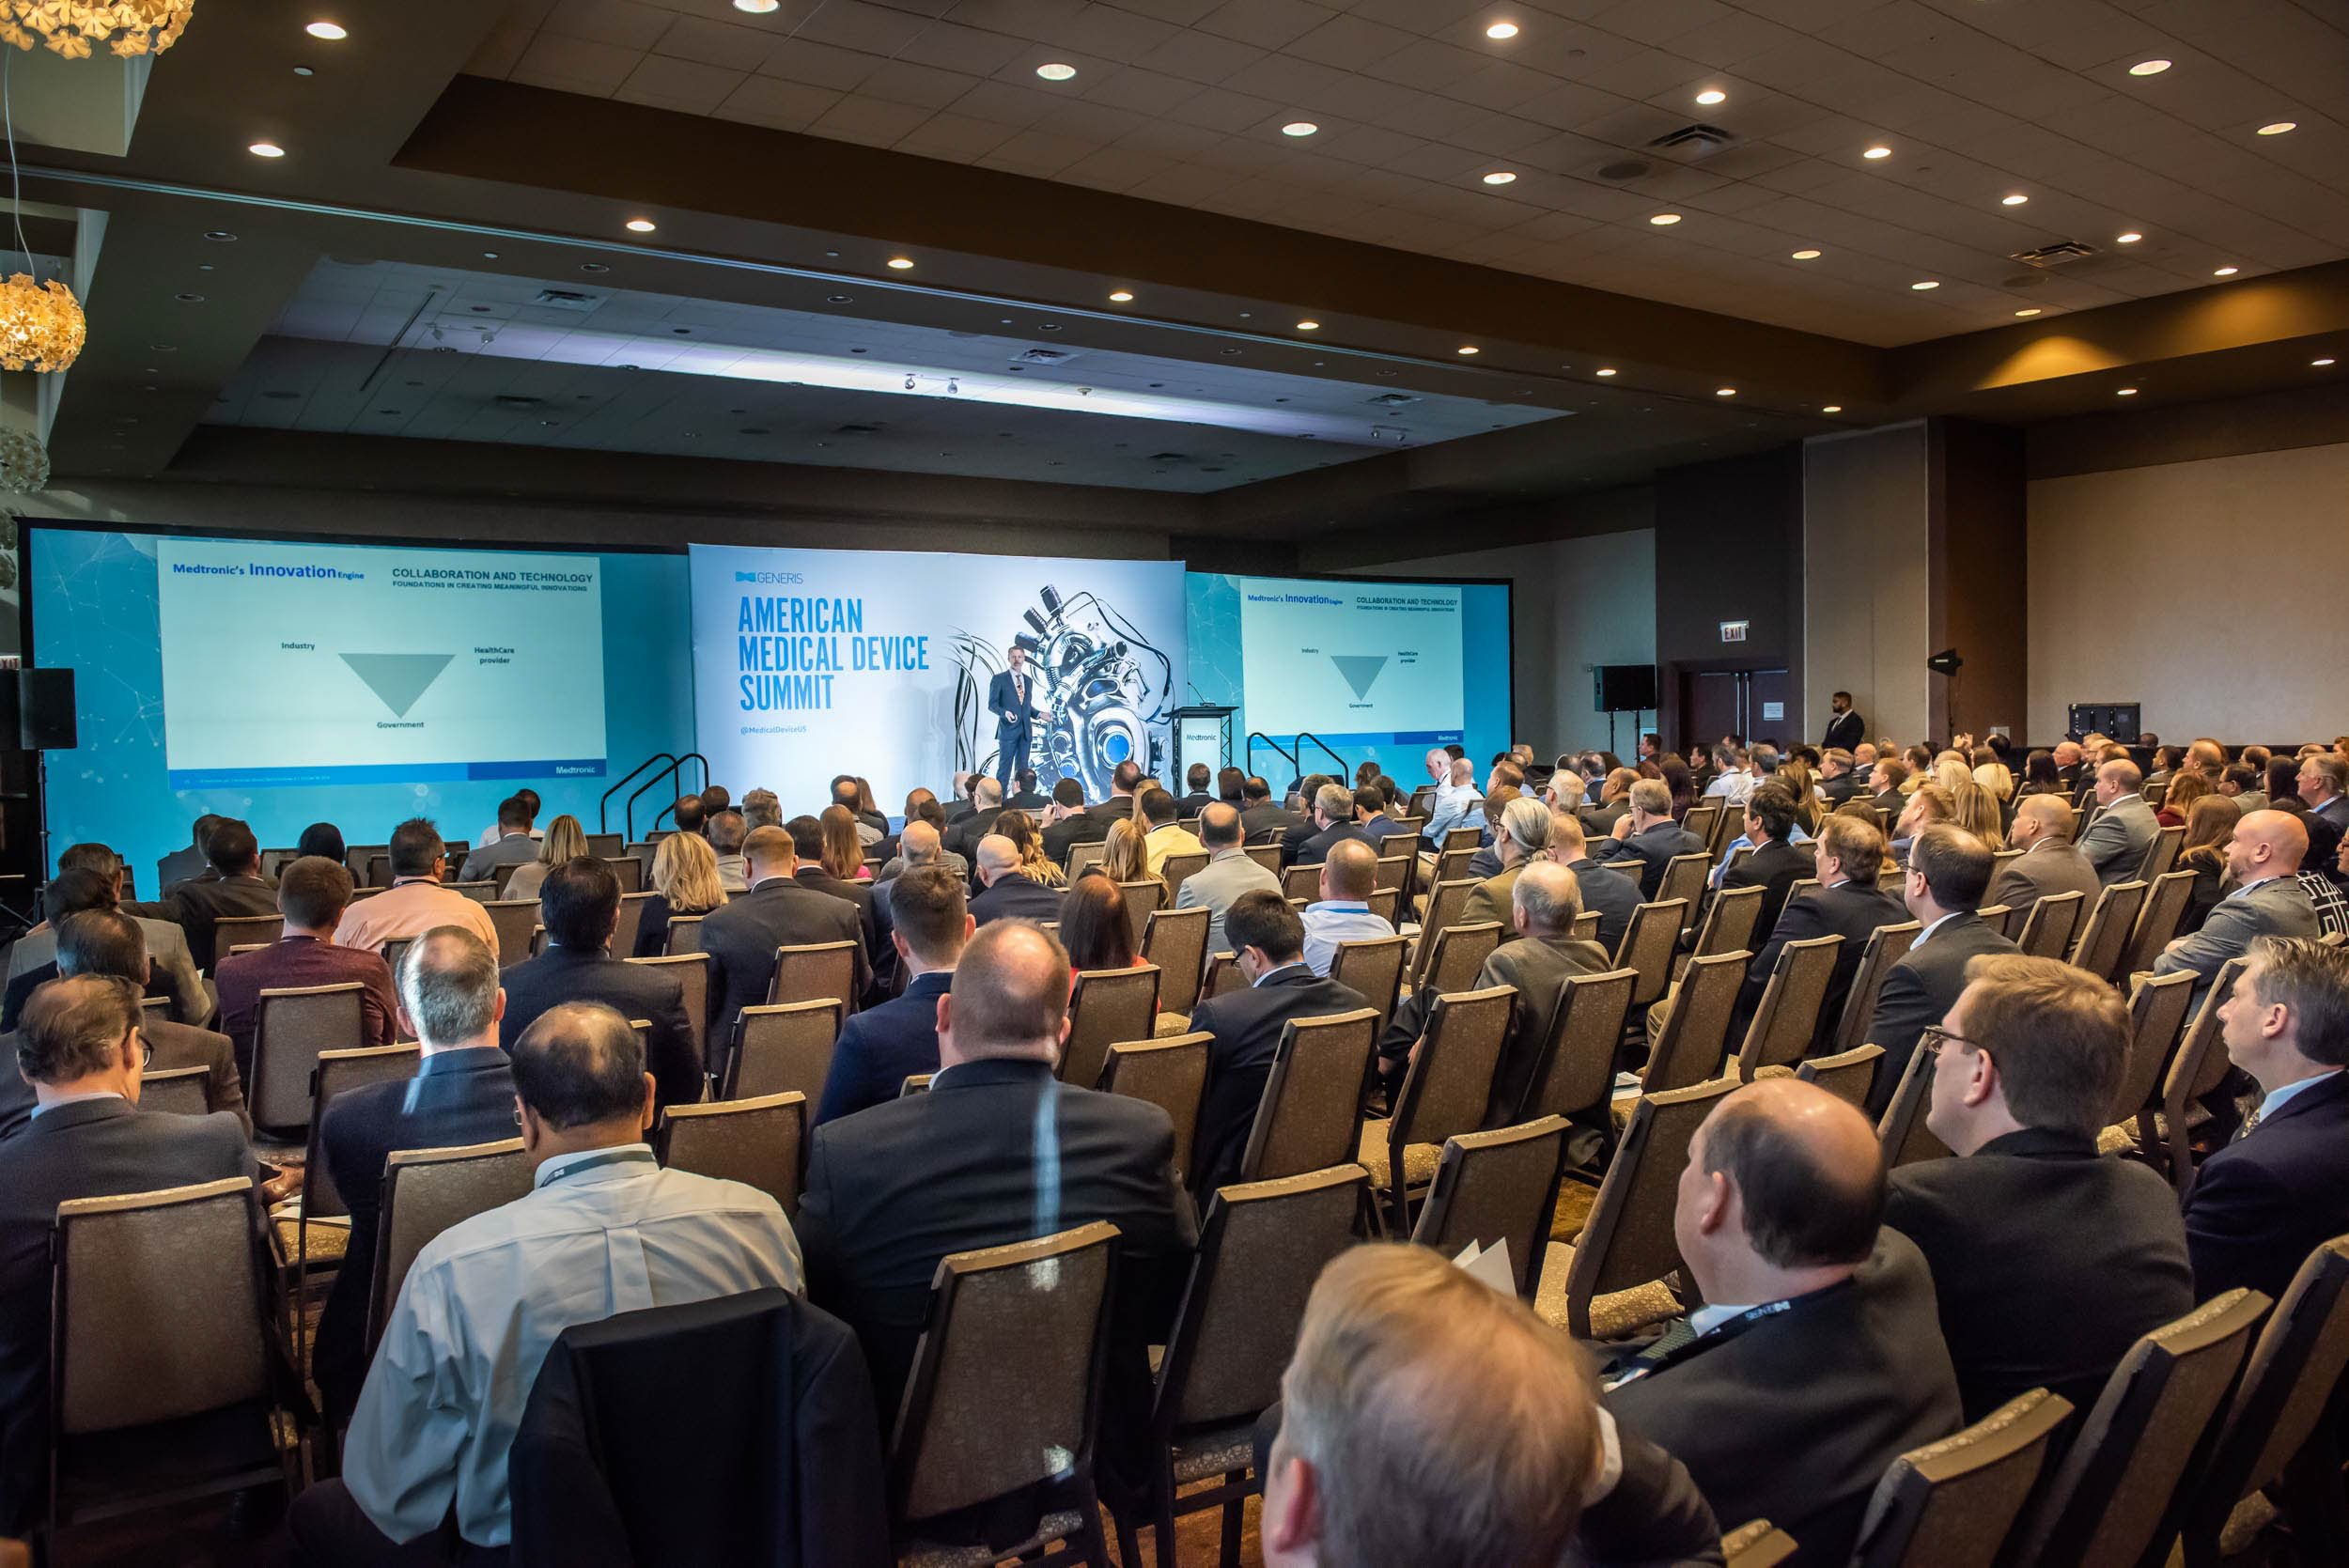 181024 - American Medical Device Summit - mark campbell photography-5_Resized_Resized.jpg